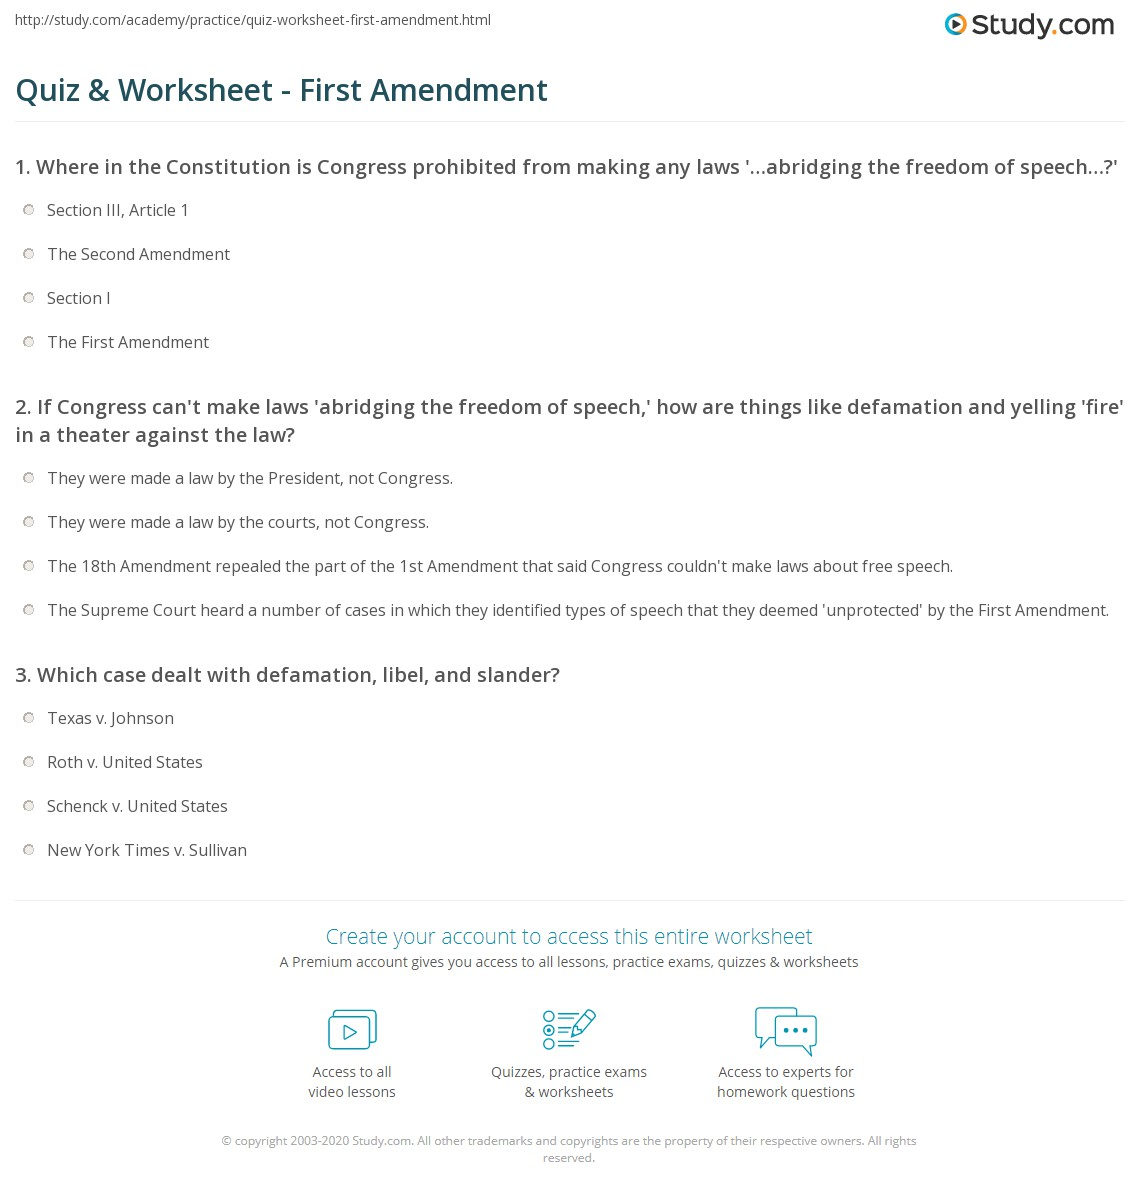 quiz & worksheet - first amendment | study